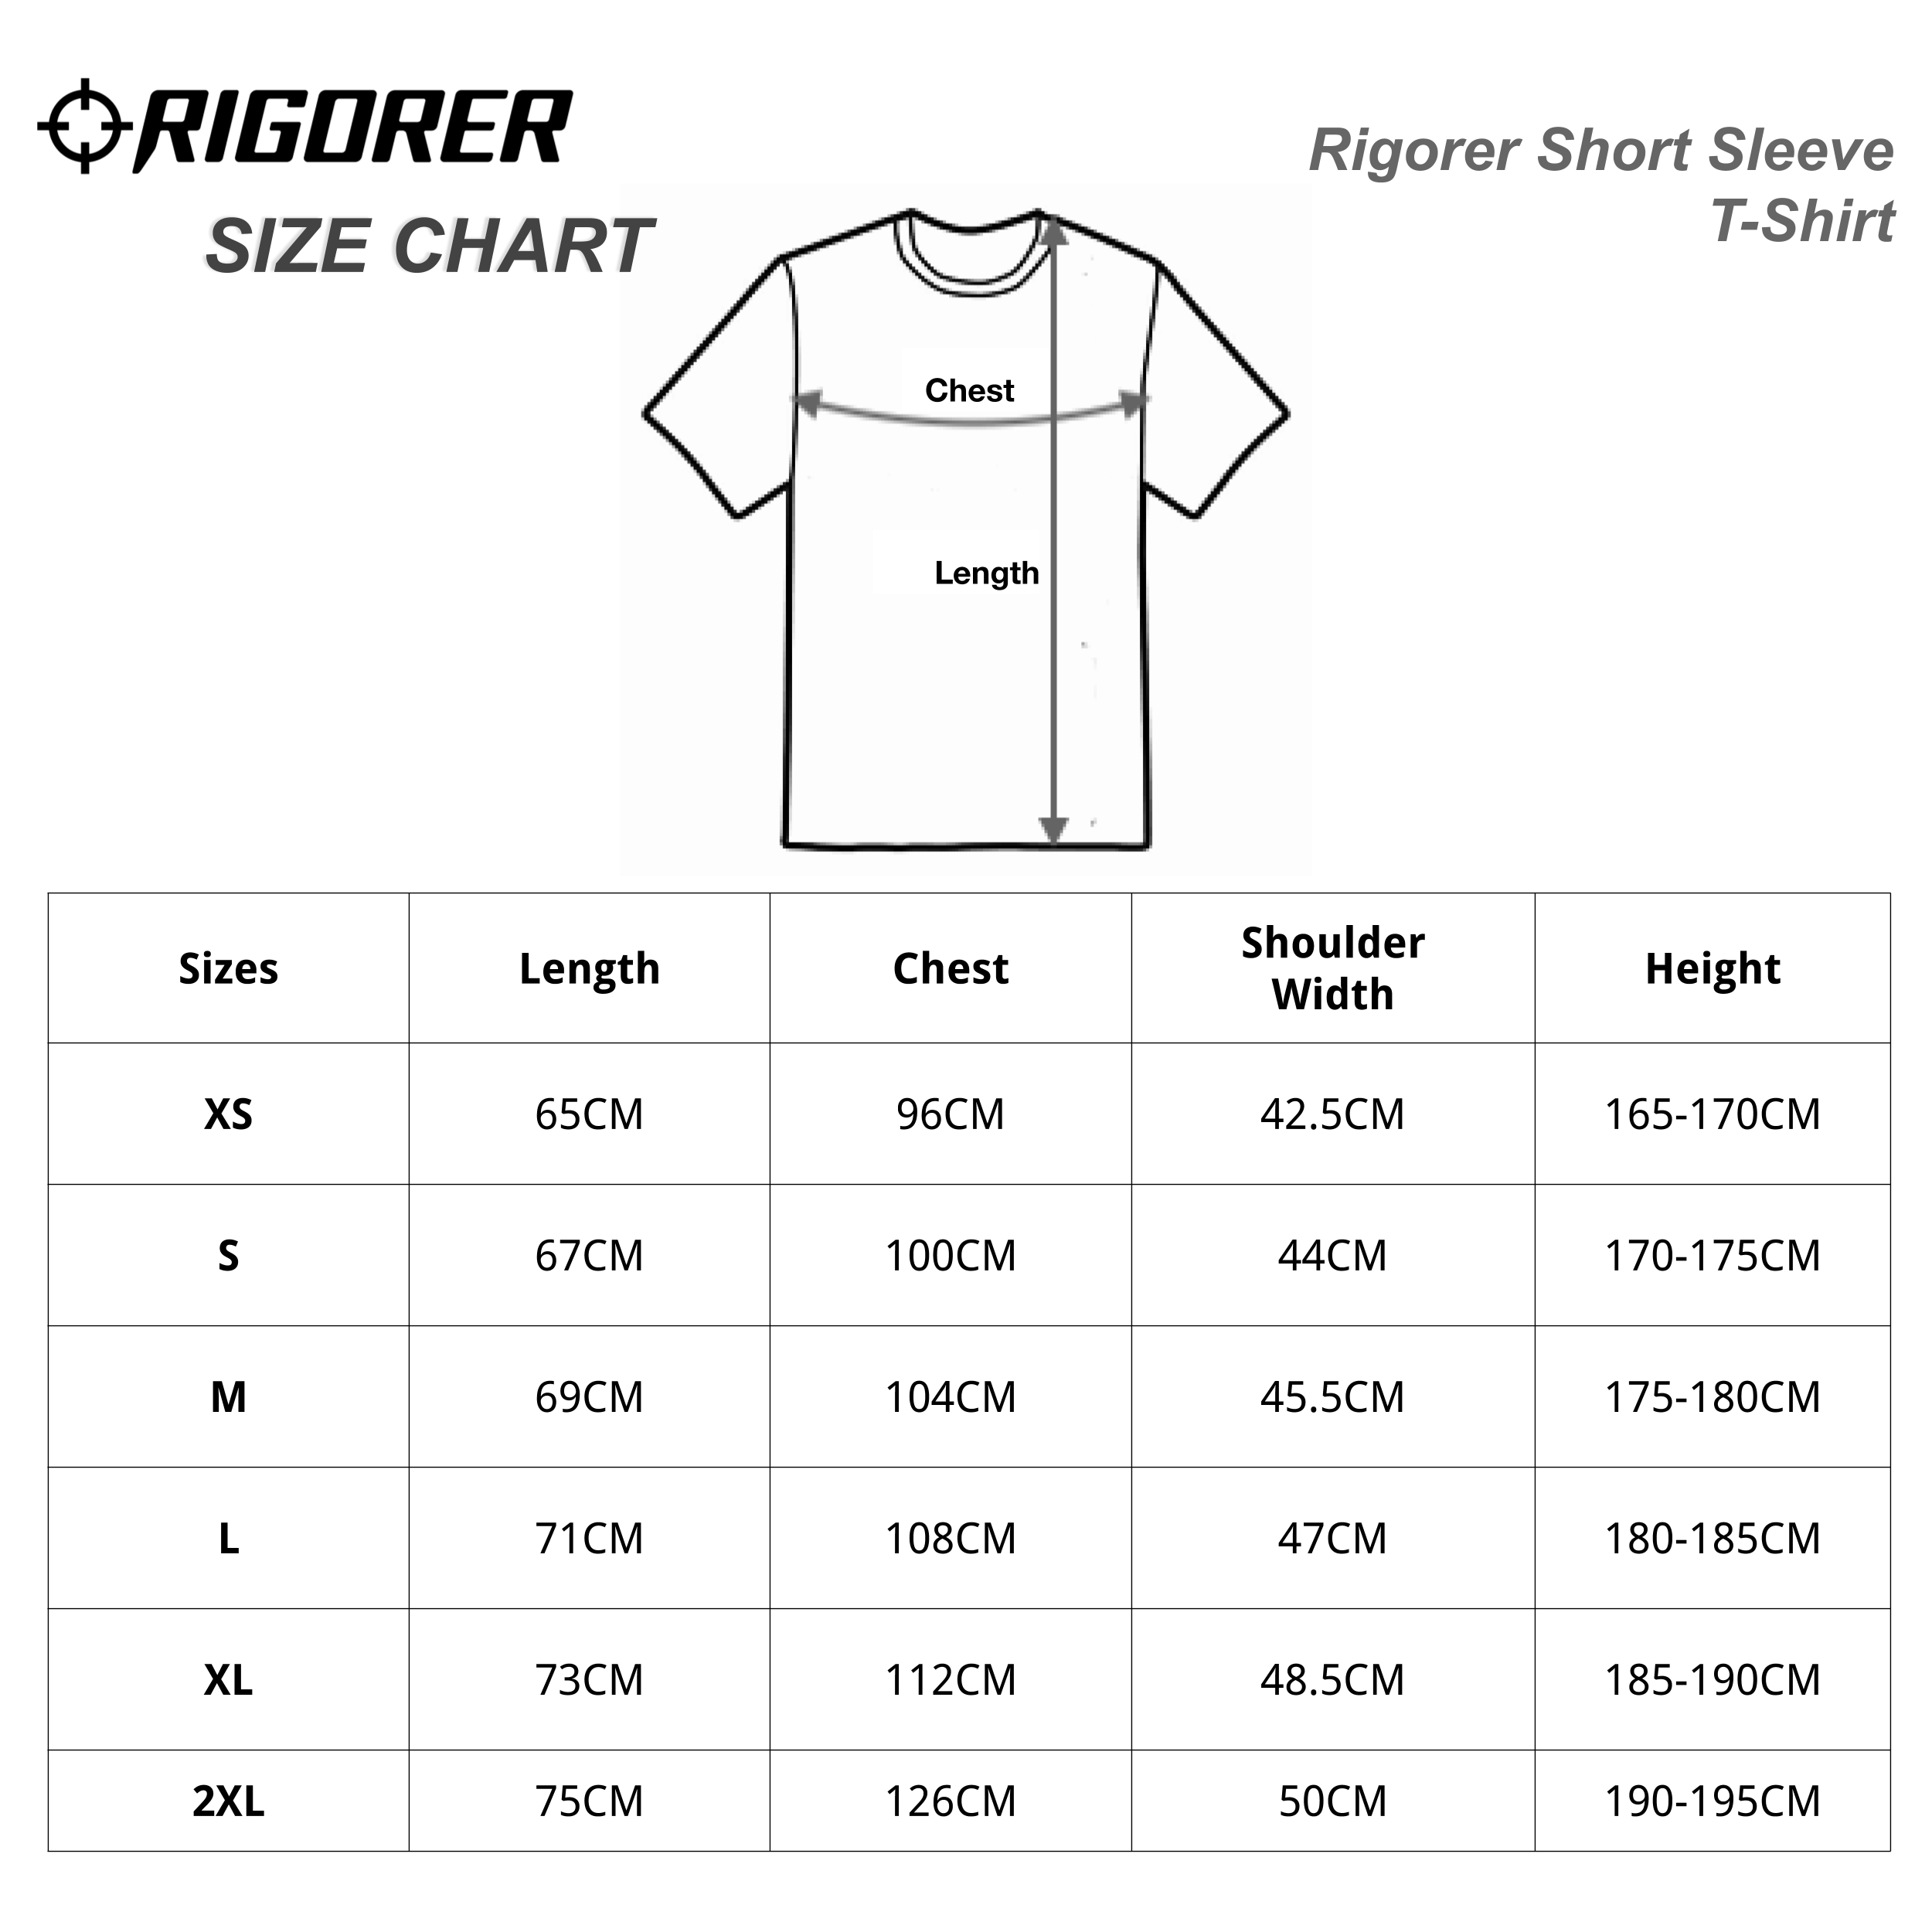 Rigorer Short Sleeve T-Shirt Sizing Chart